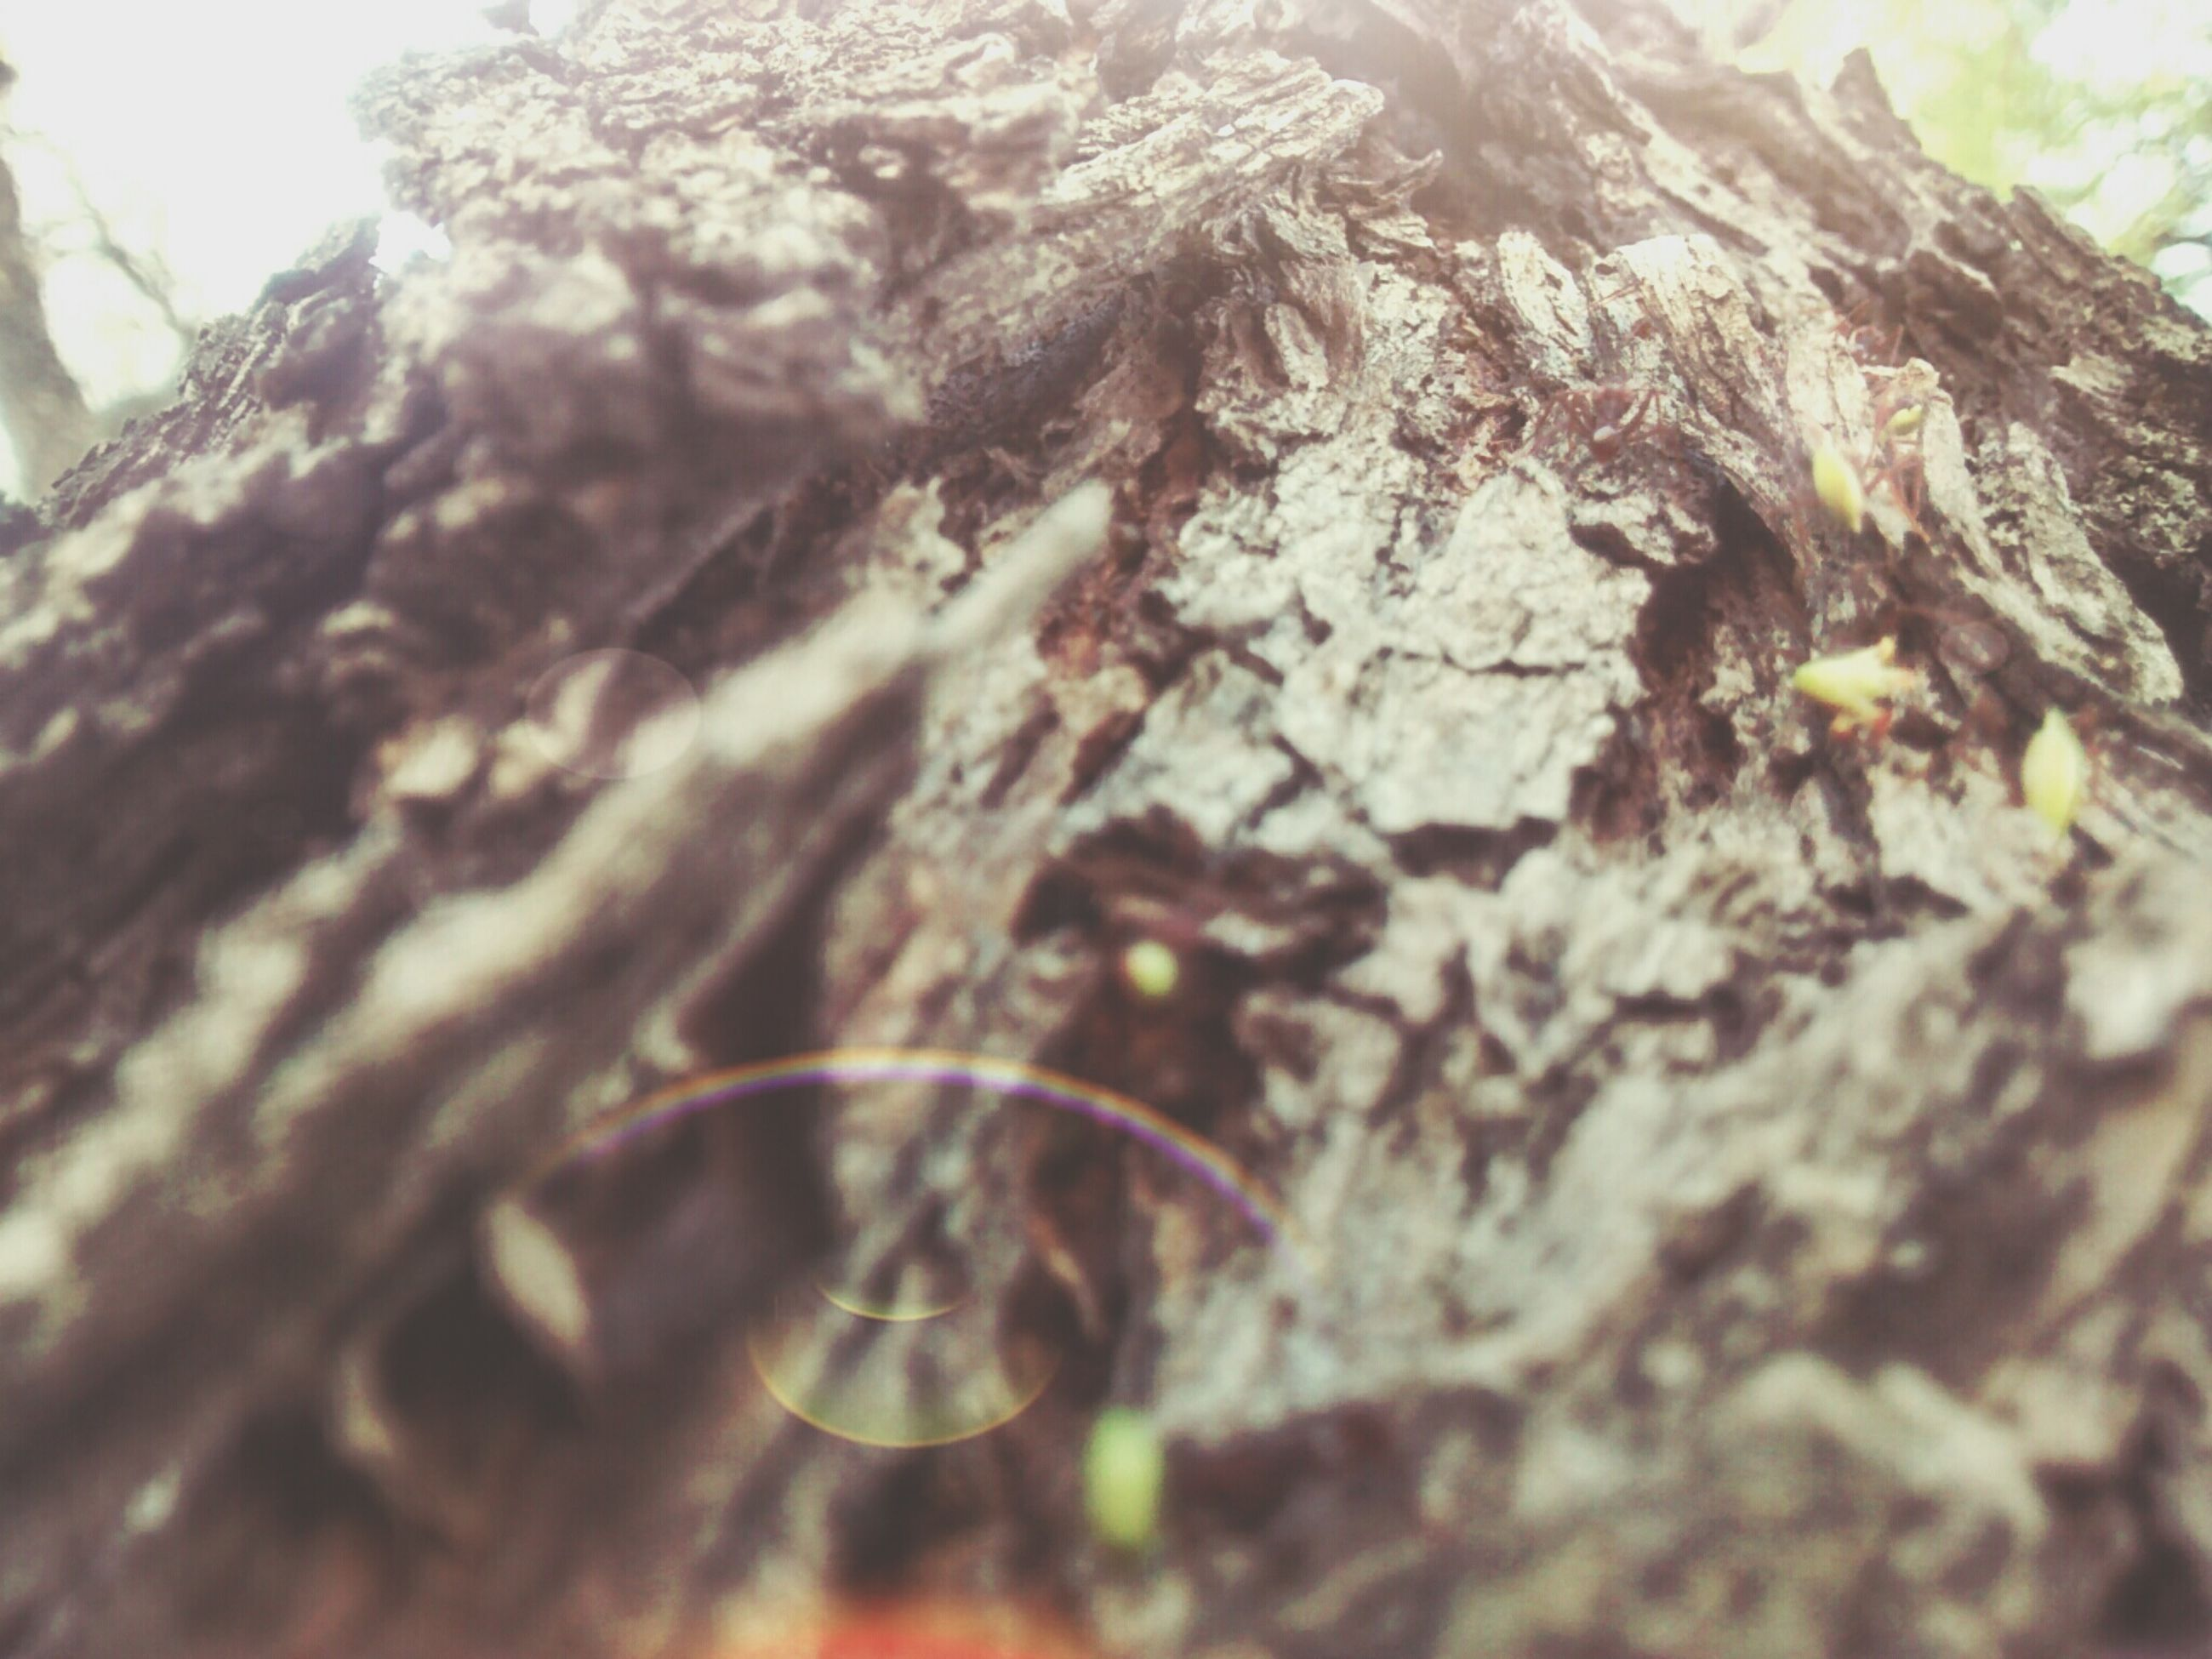 close-up, tree, selective focus, nature, textured, growth, focus on foreground, low angle view, tranquility, rough, day, outdoors, no people, beauty in nature, tree trunk, branch, sunlight, moss, rock - object, natural pattern